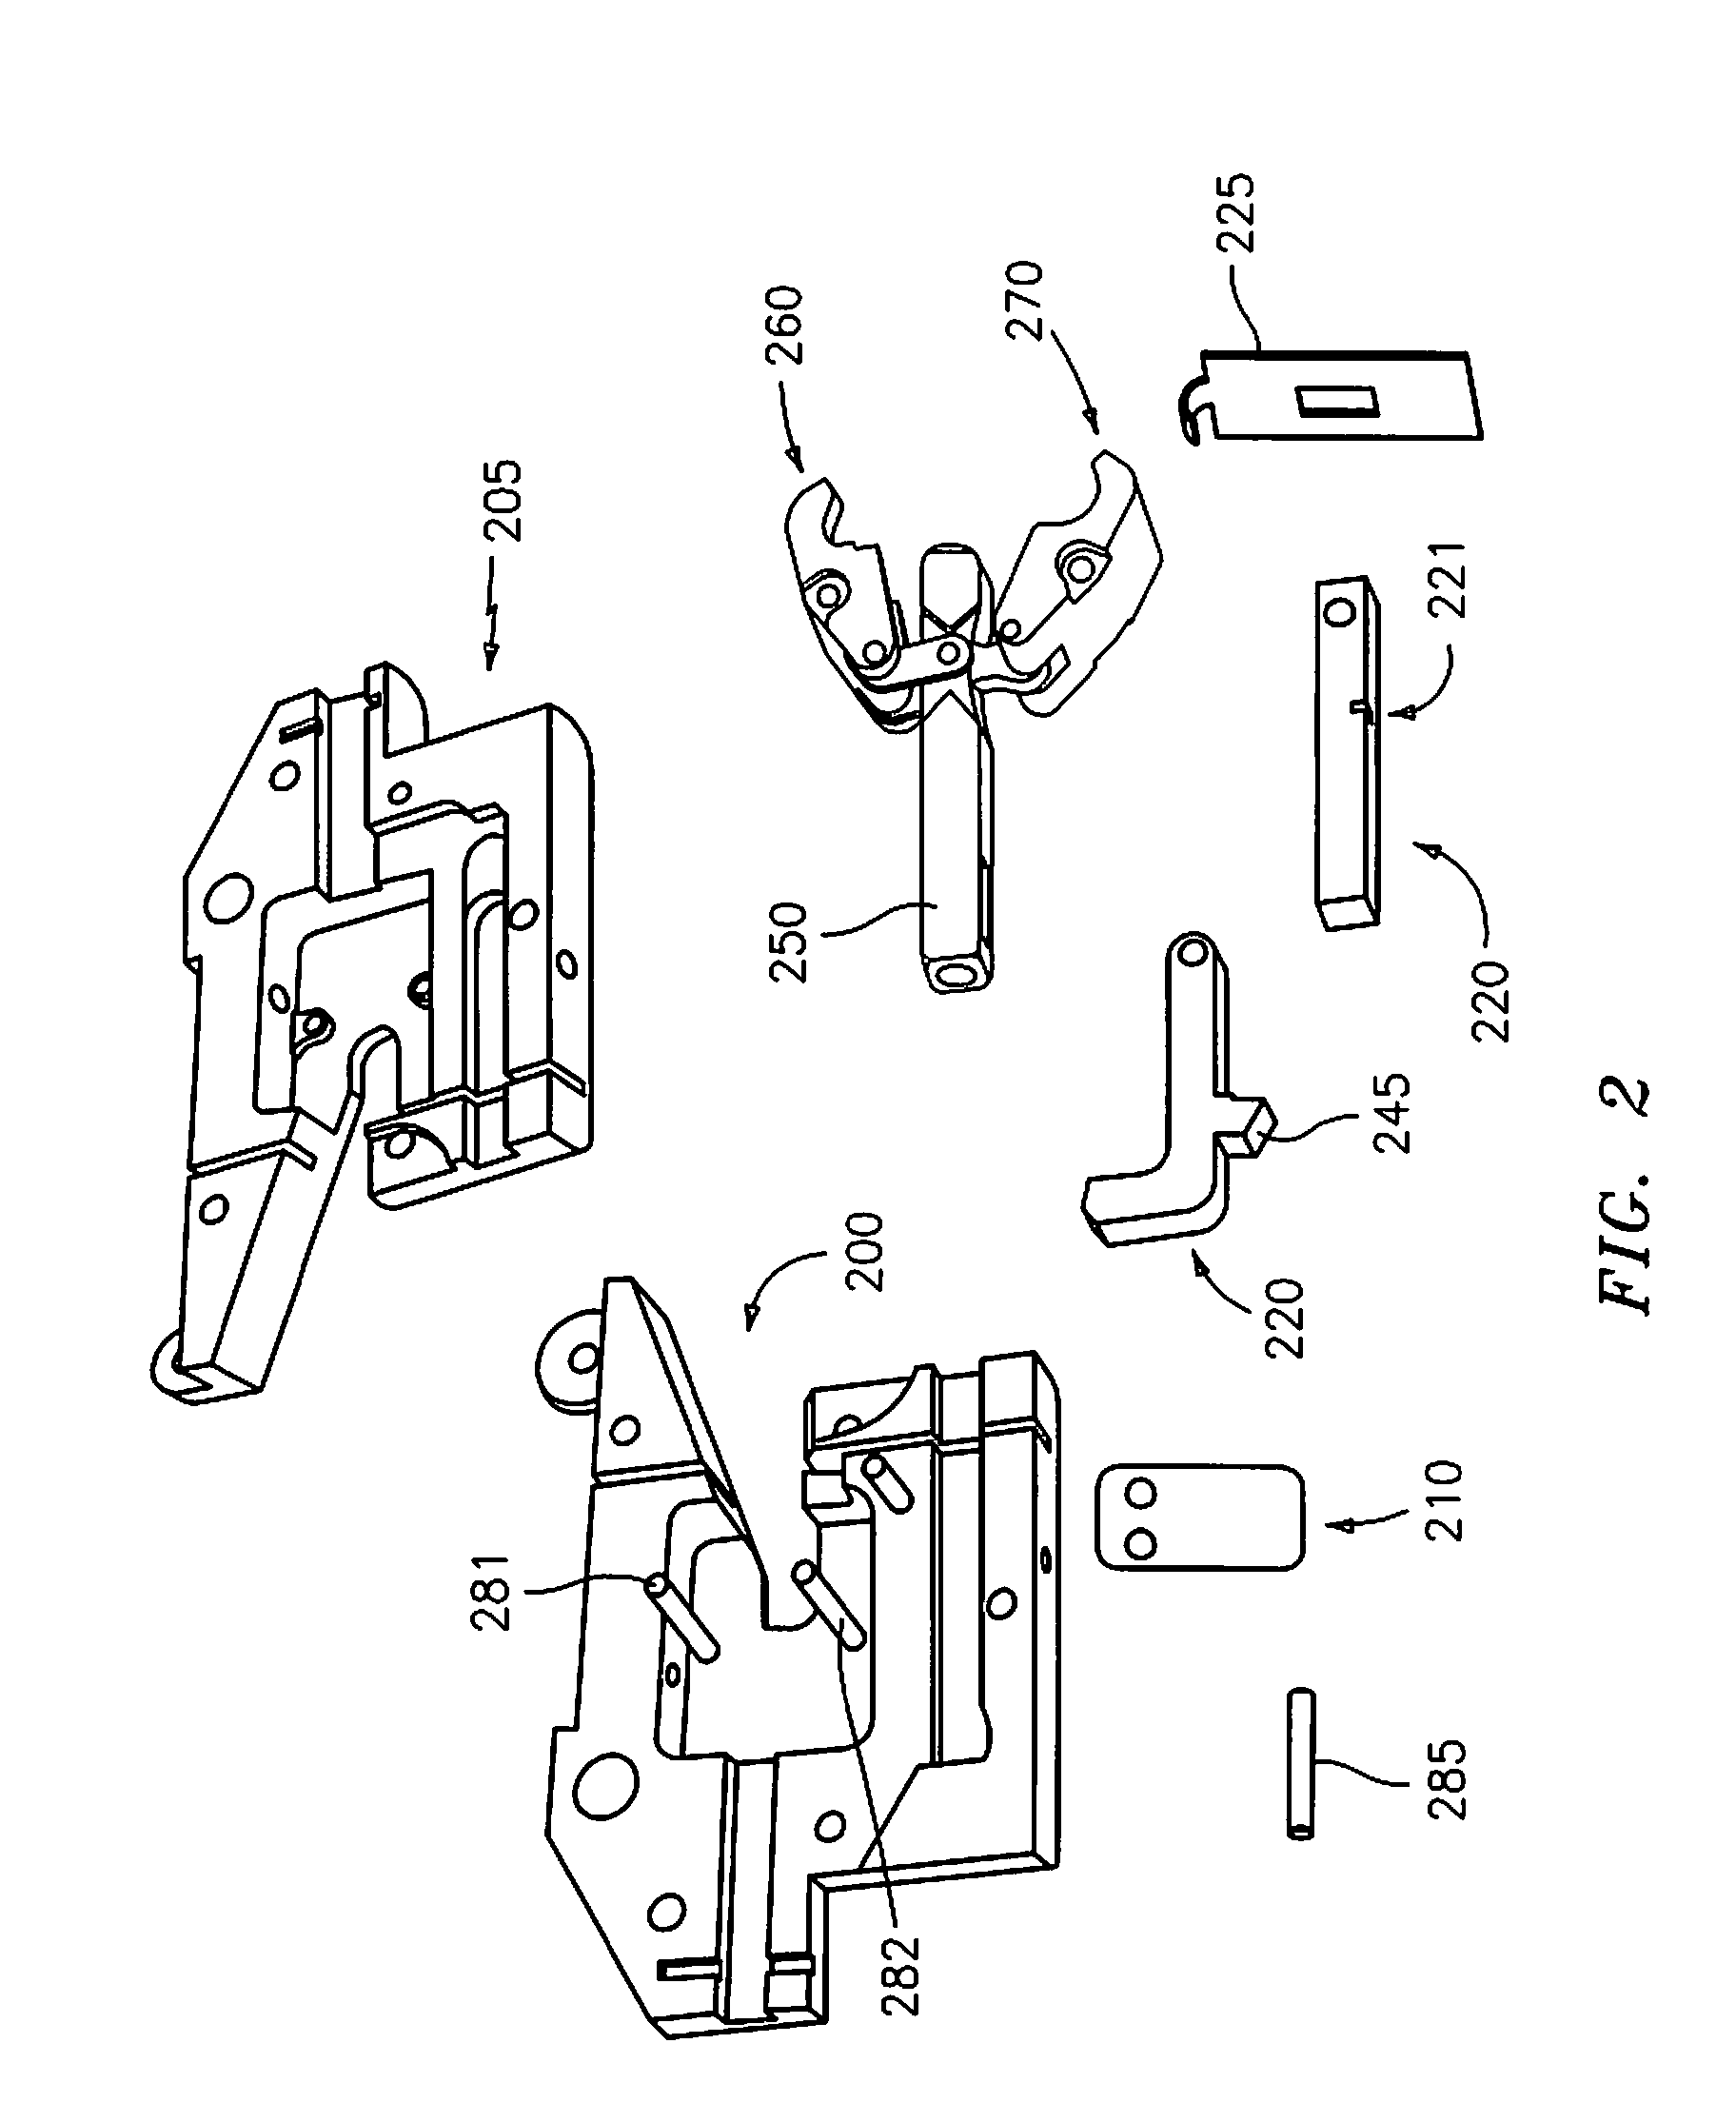 Door Latch Mechanism Diagram as well Archeryessentials furthermore US8069602 further pound Crossbow Mechanism furthermore US20080202487. on crossbow trigger mechanism diagram